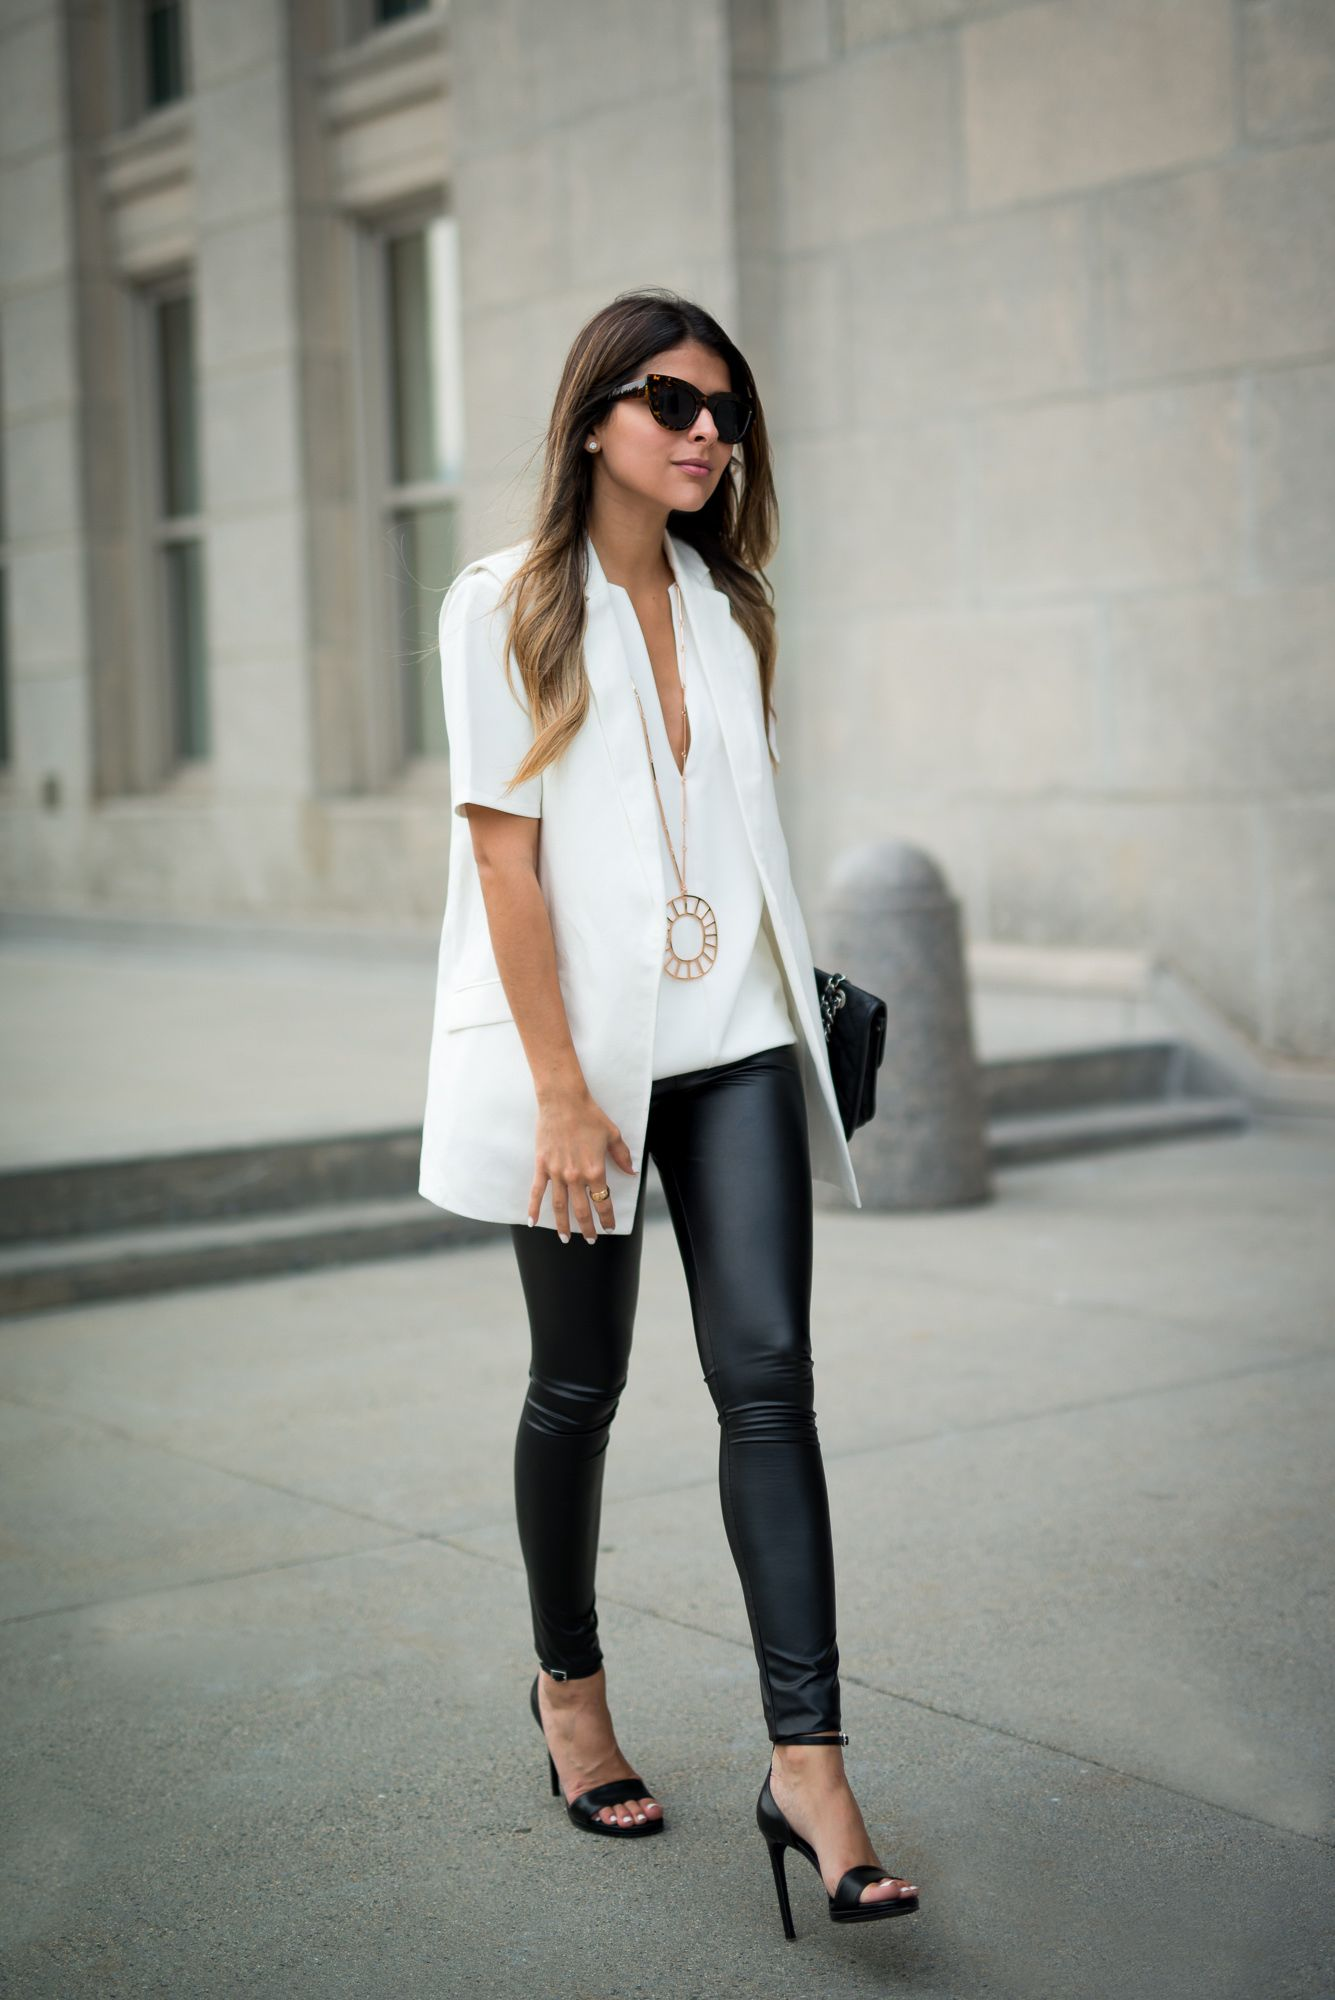 Summer Leather | More Faux leather leggings and Panama ideas